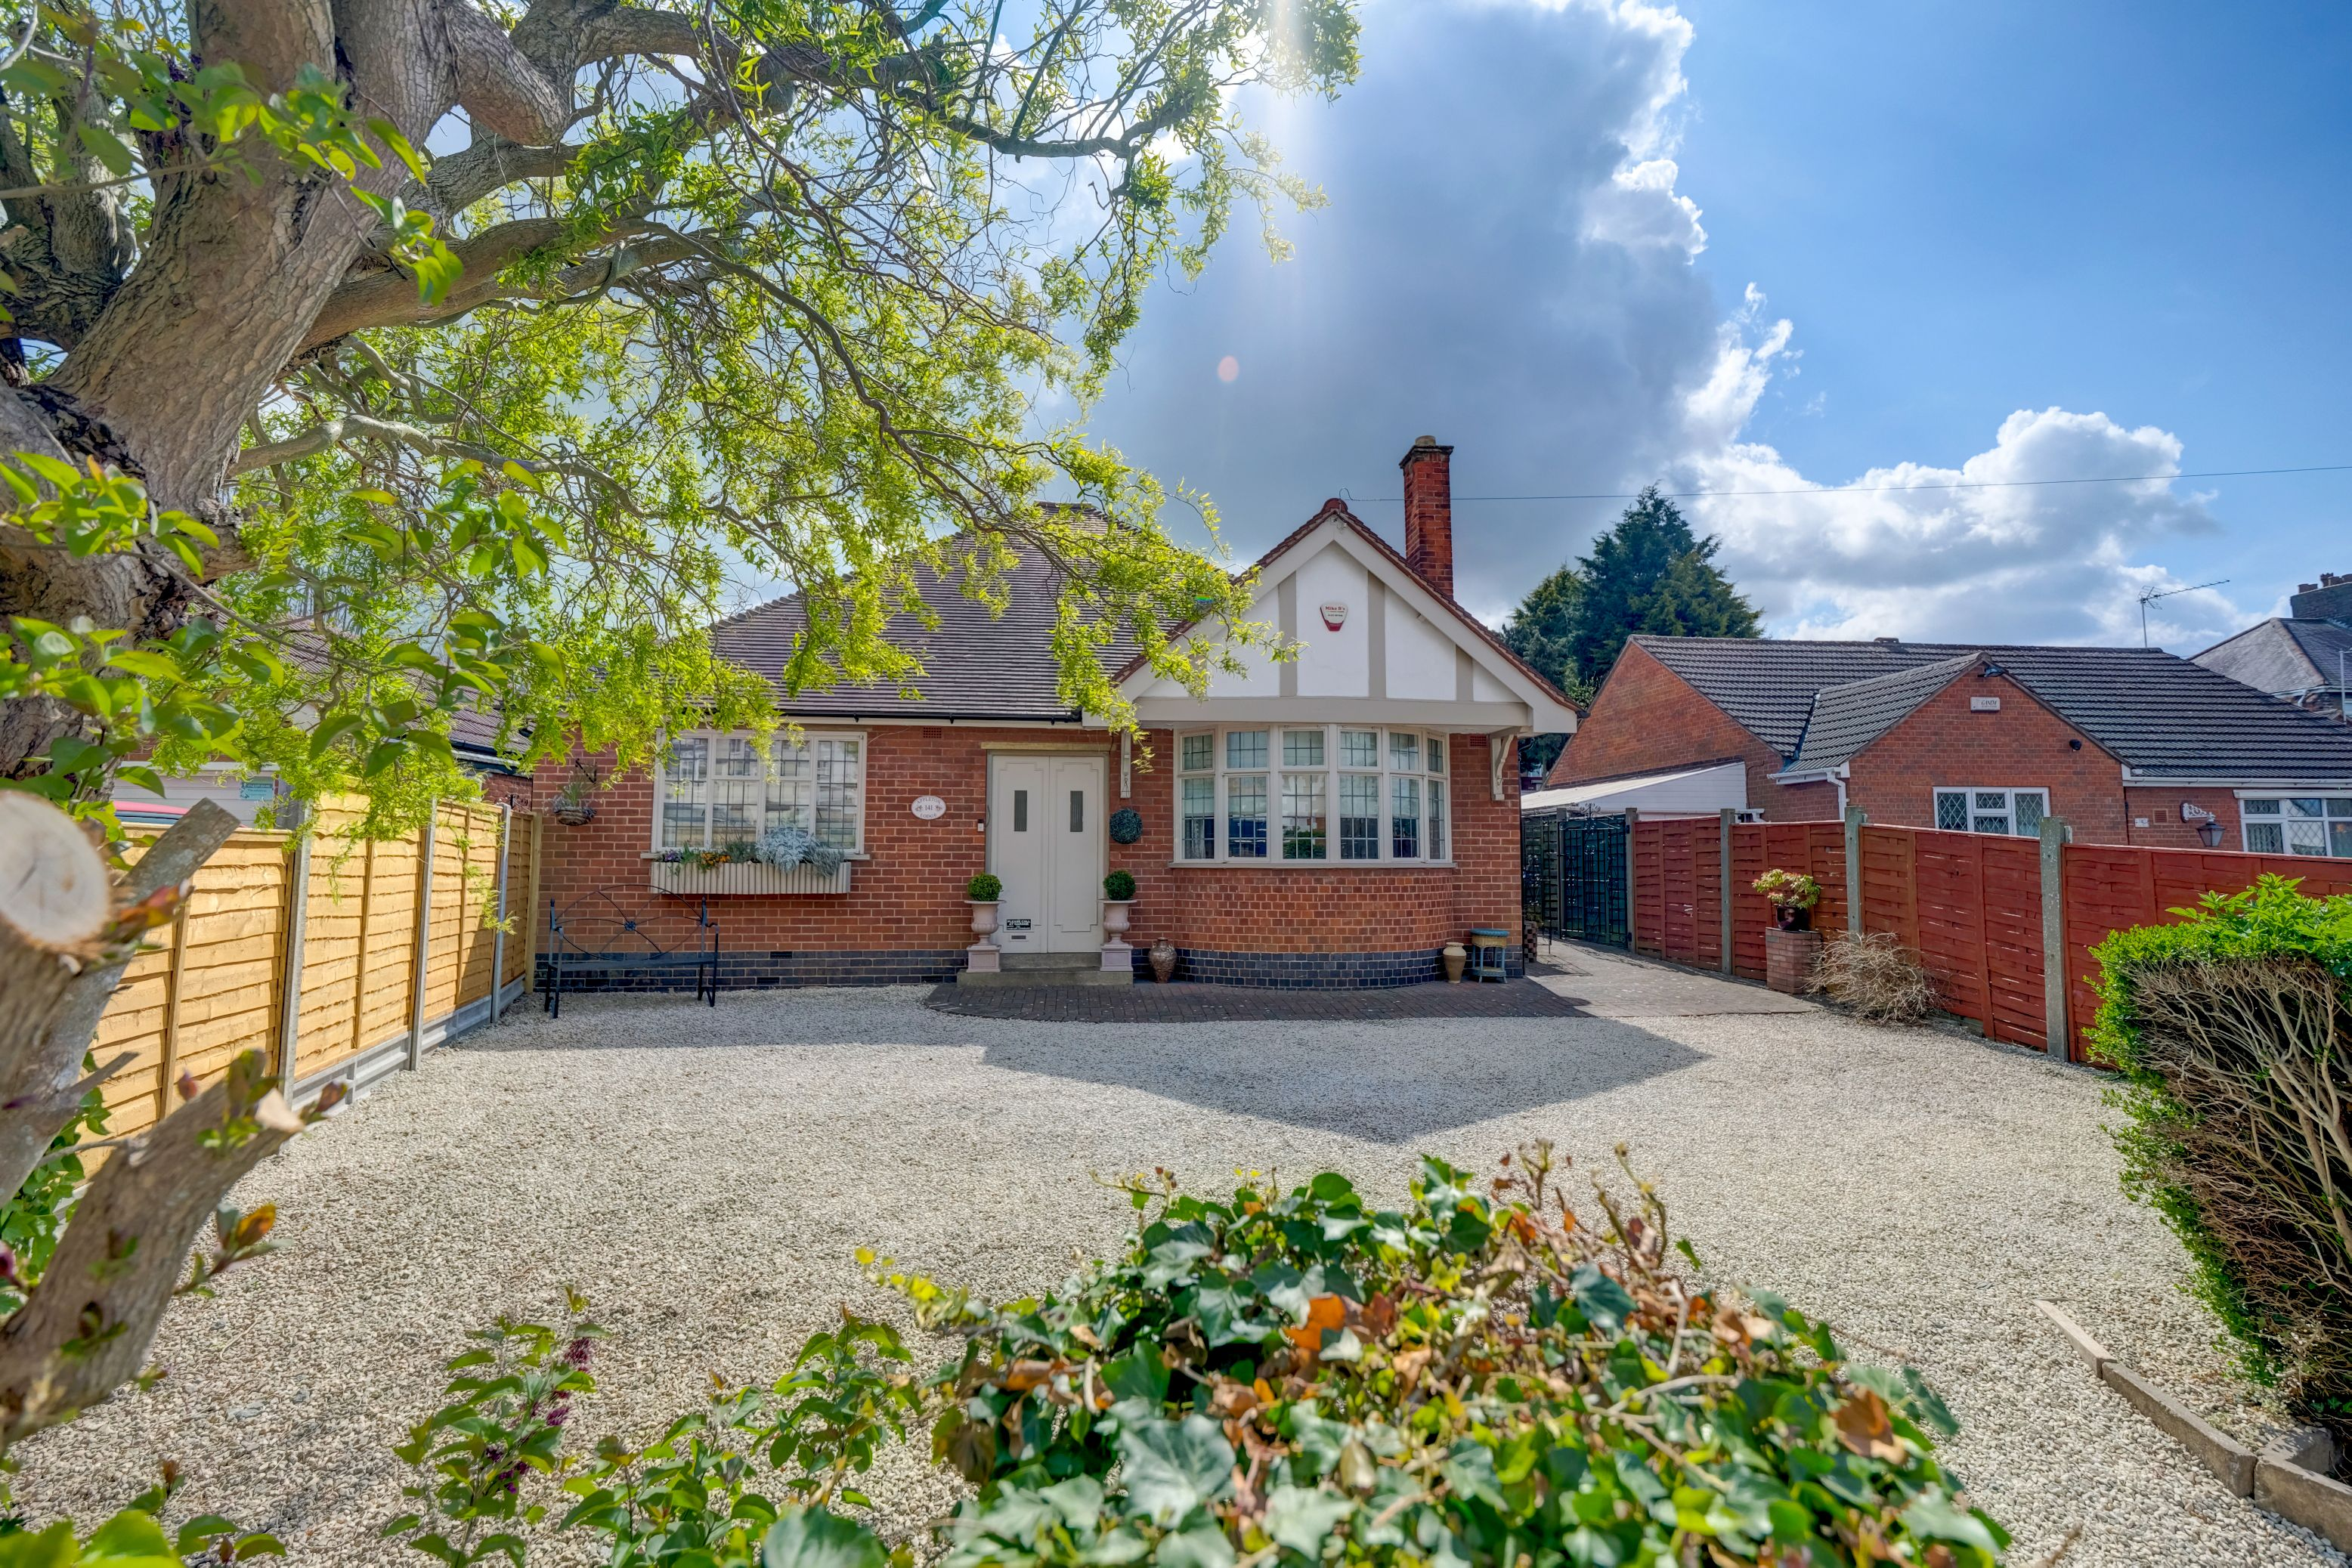 4 bed detached house for sale in Stanley Road, Hinckley, LE10, Hinckley  - Property Image 2